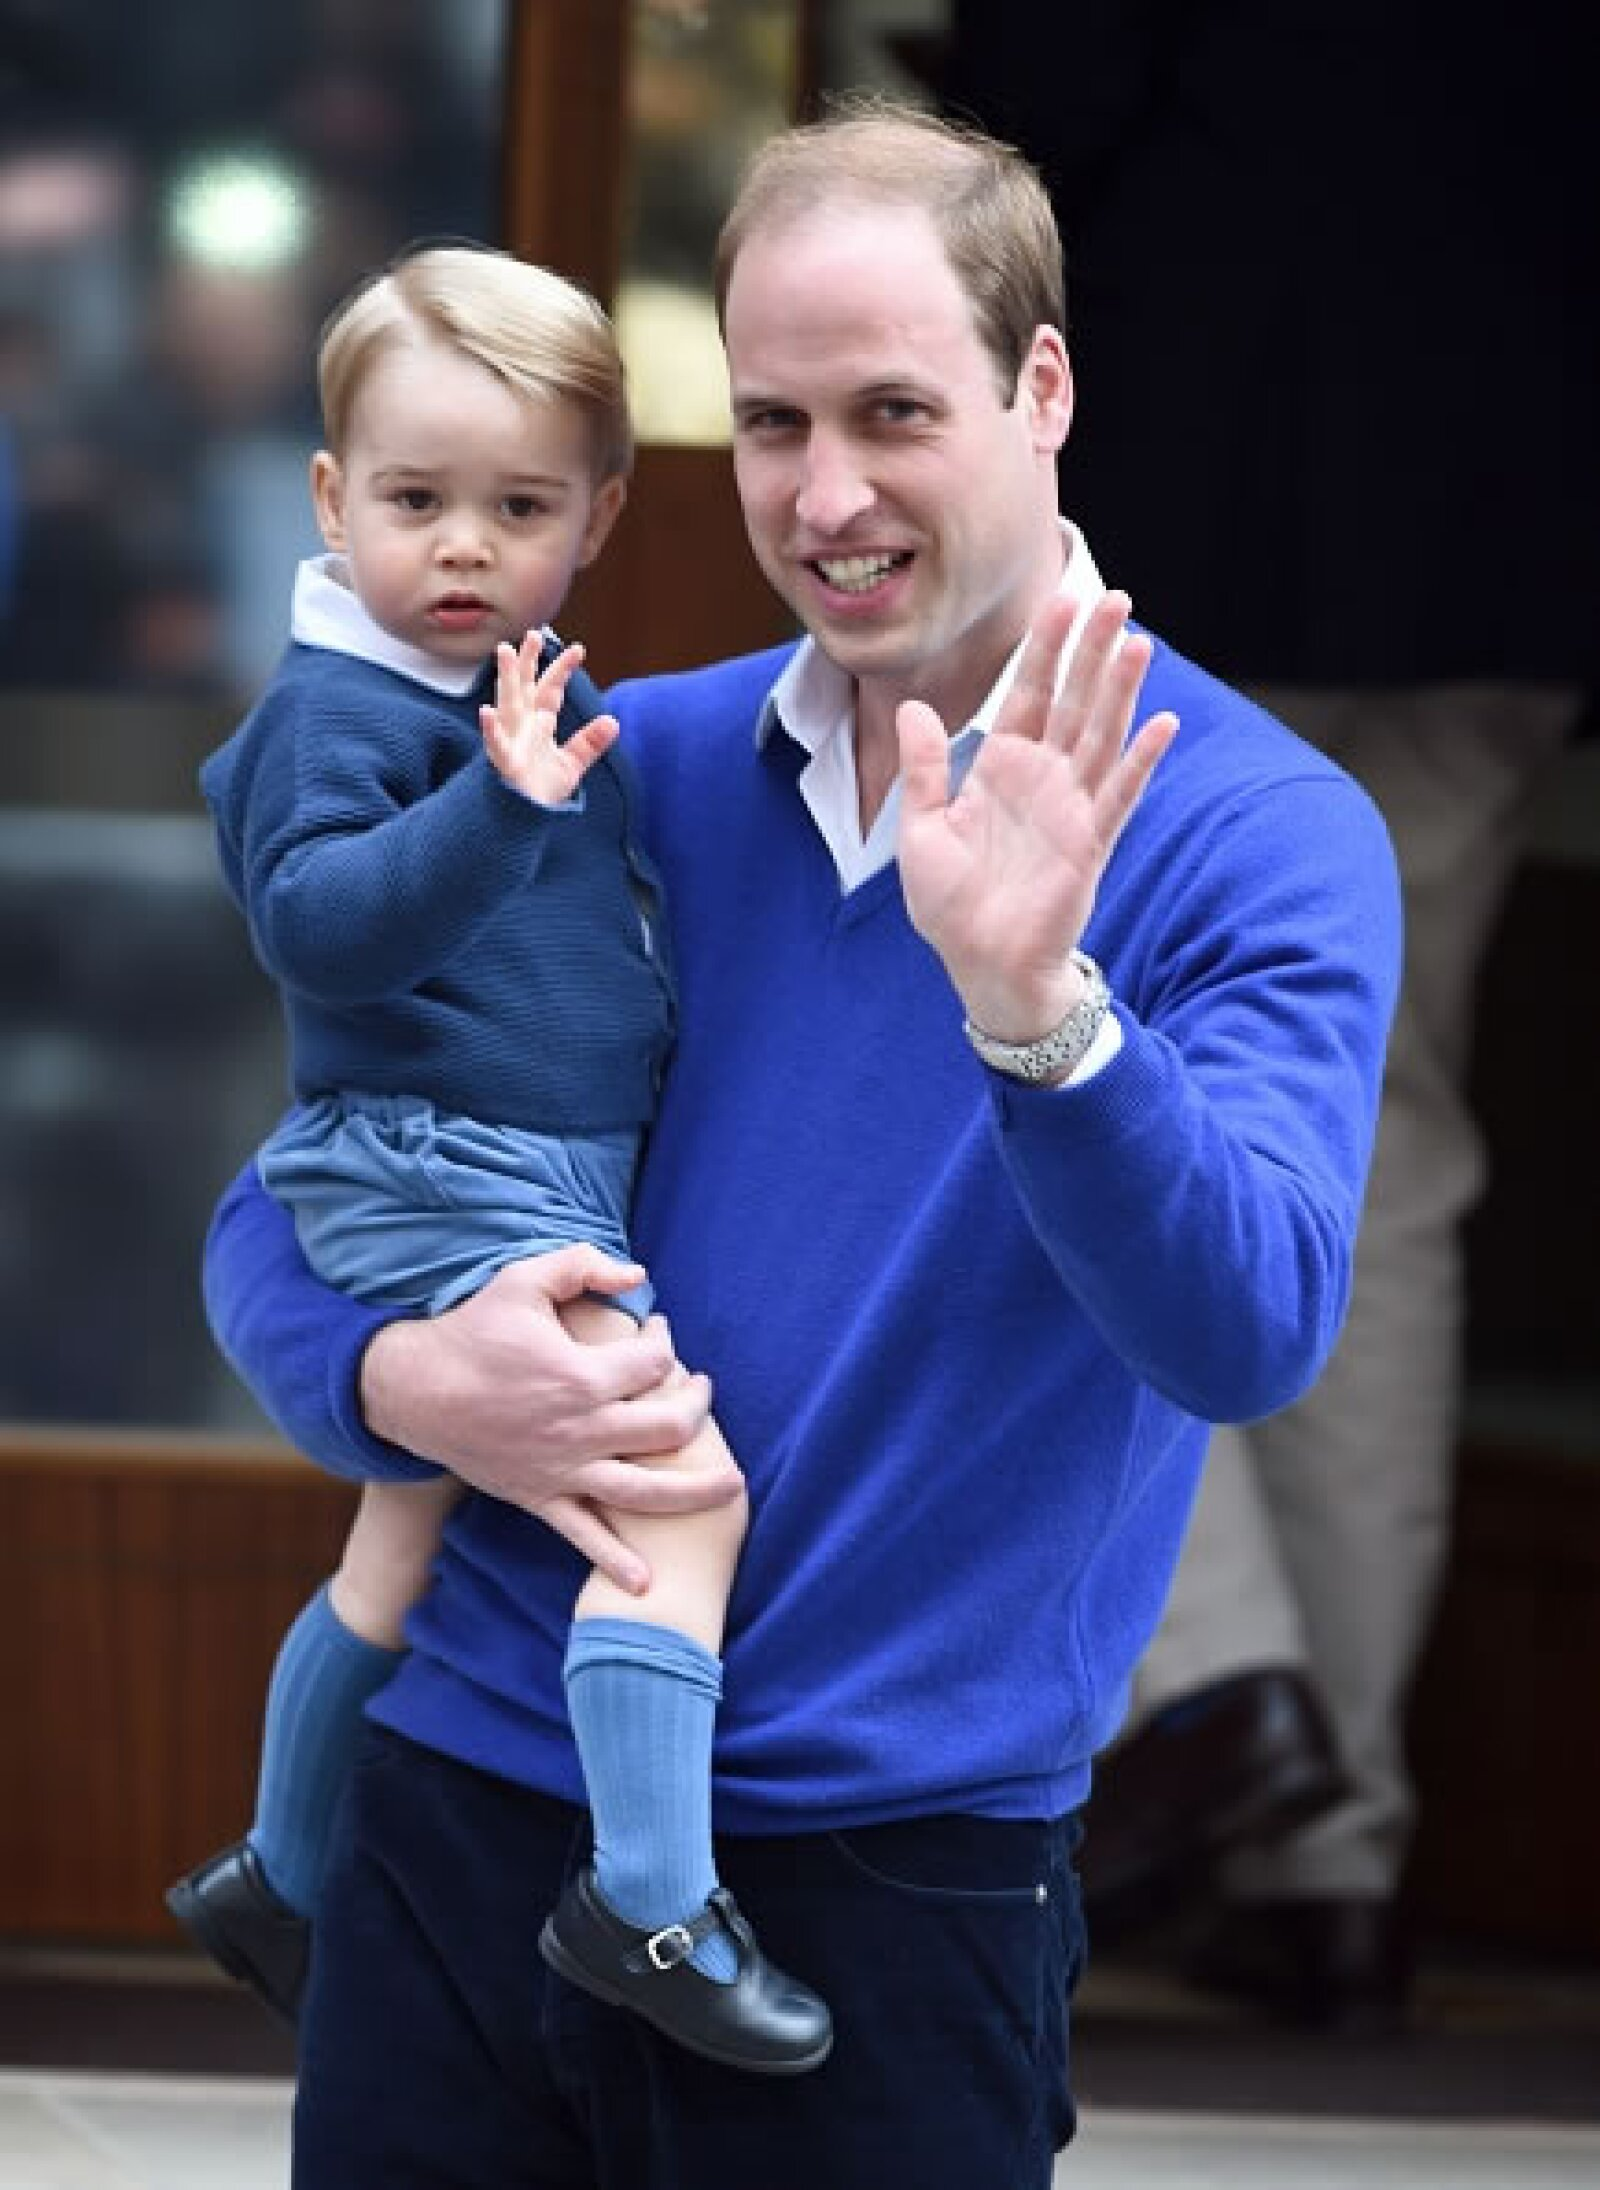 George y William de Cambridge saludan al llegar al hospital a conocer a la nueva princesa.